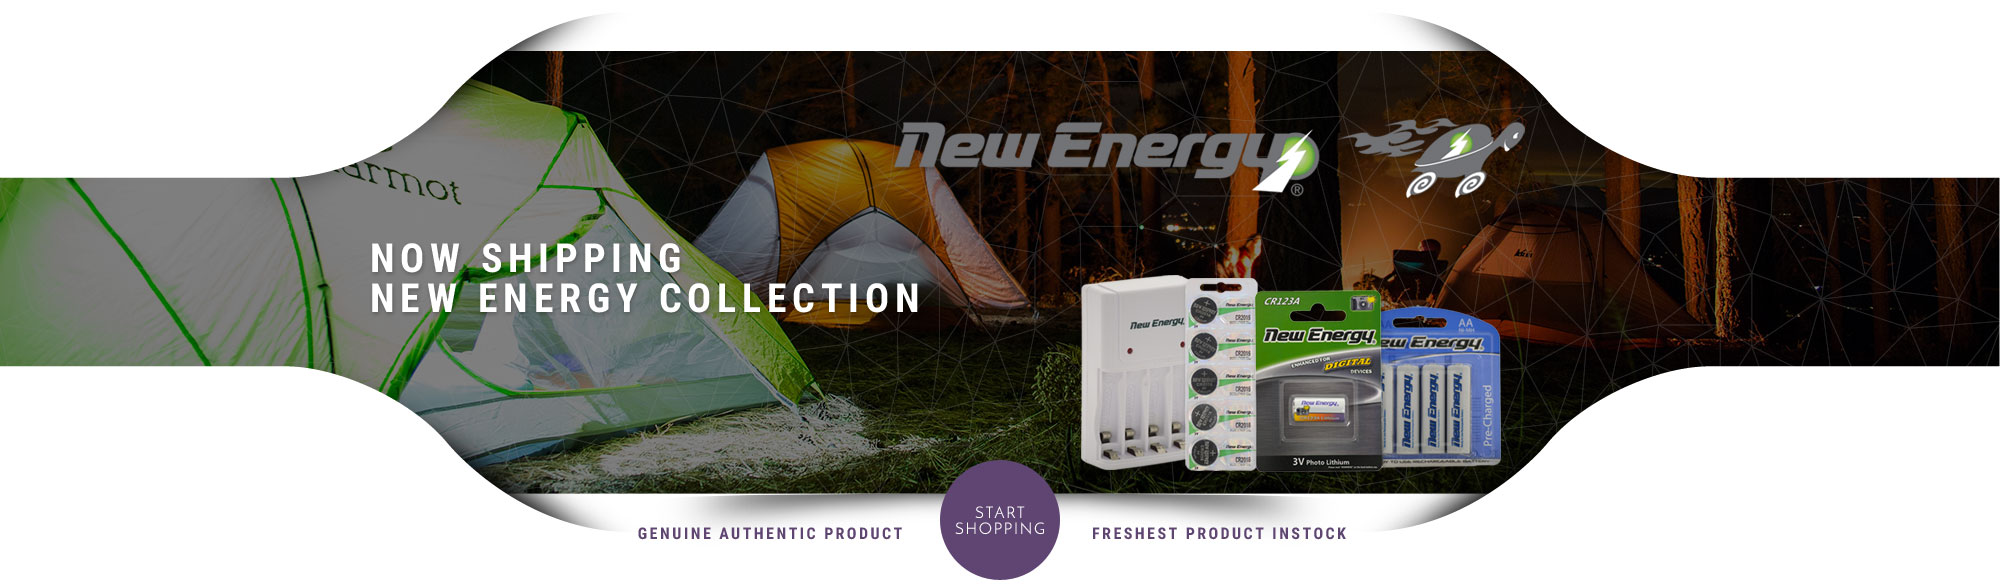 Now Shipping New Energy Collection - Genuine Authentic Product - Freshest Product Instock  - start shopping